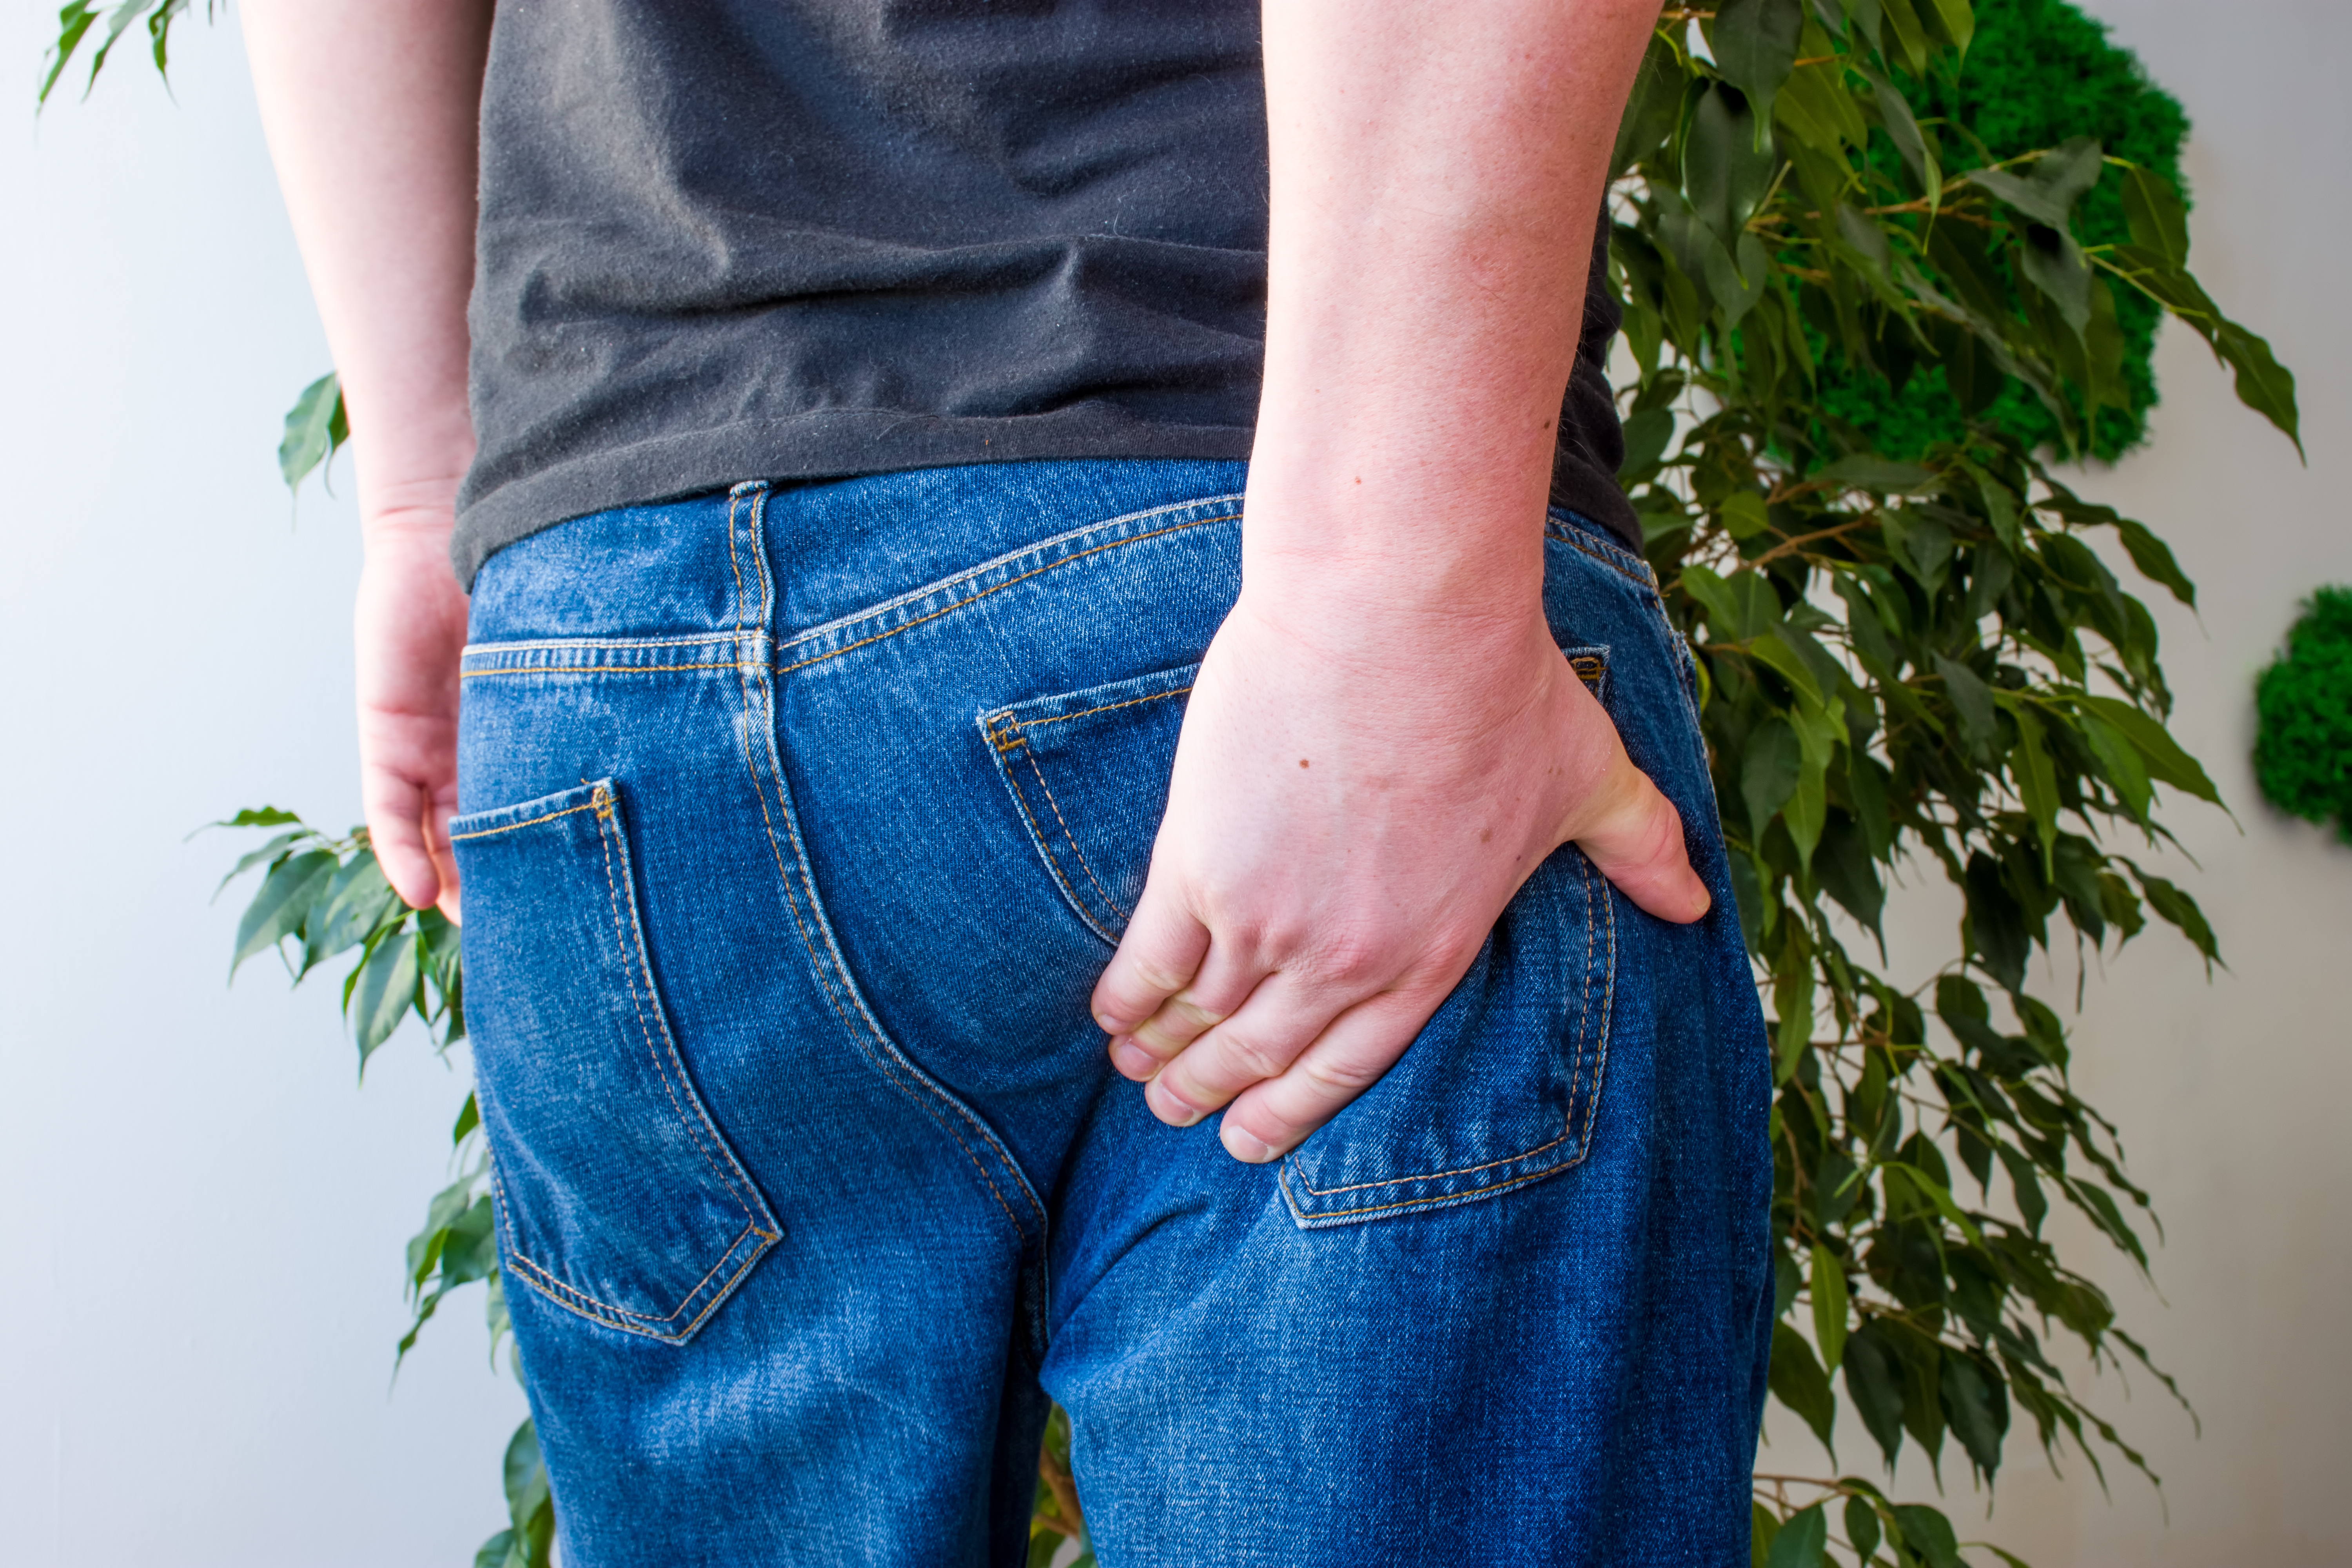 Can Sciatica Cause Twitching Muscles in the Butt or Leg?